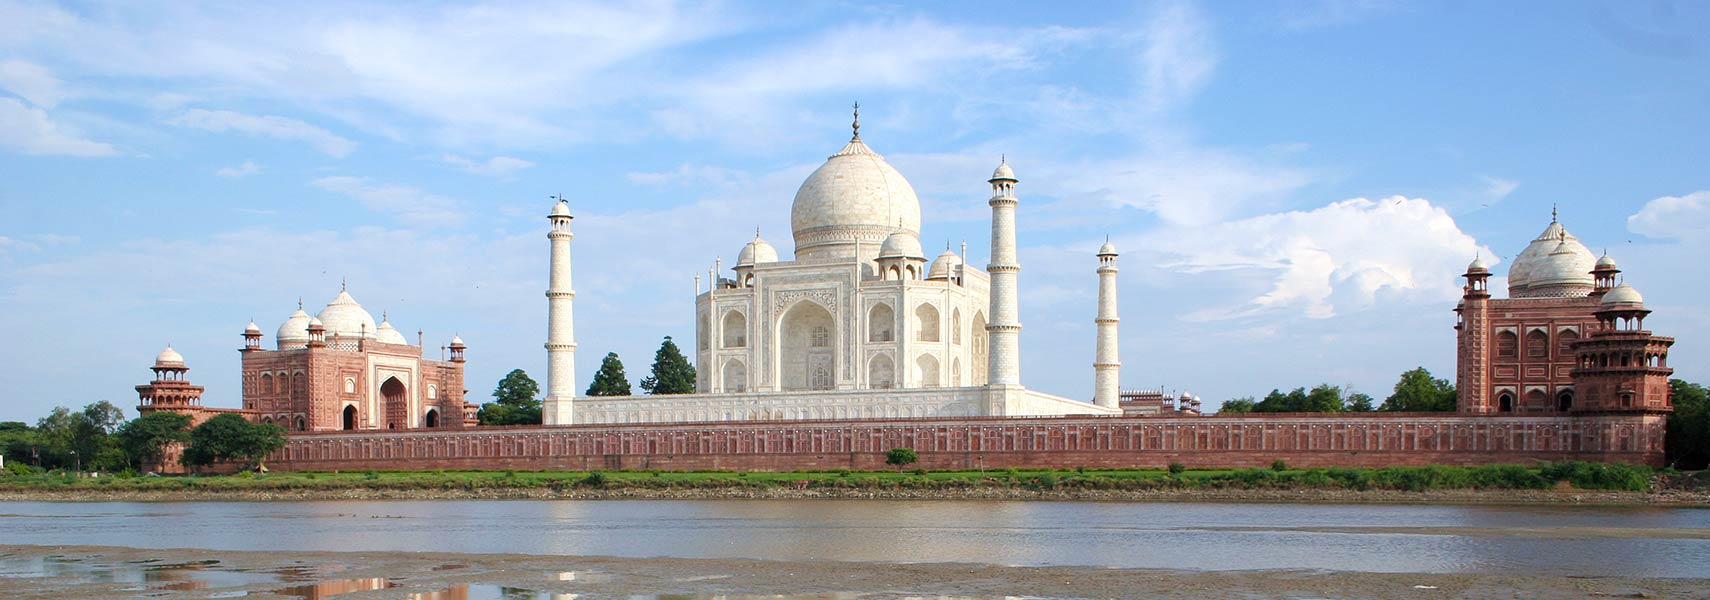 Taj Mahal at Yamuna river in Agra, Uttar Pradesh